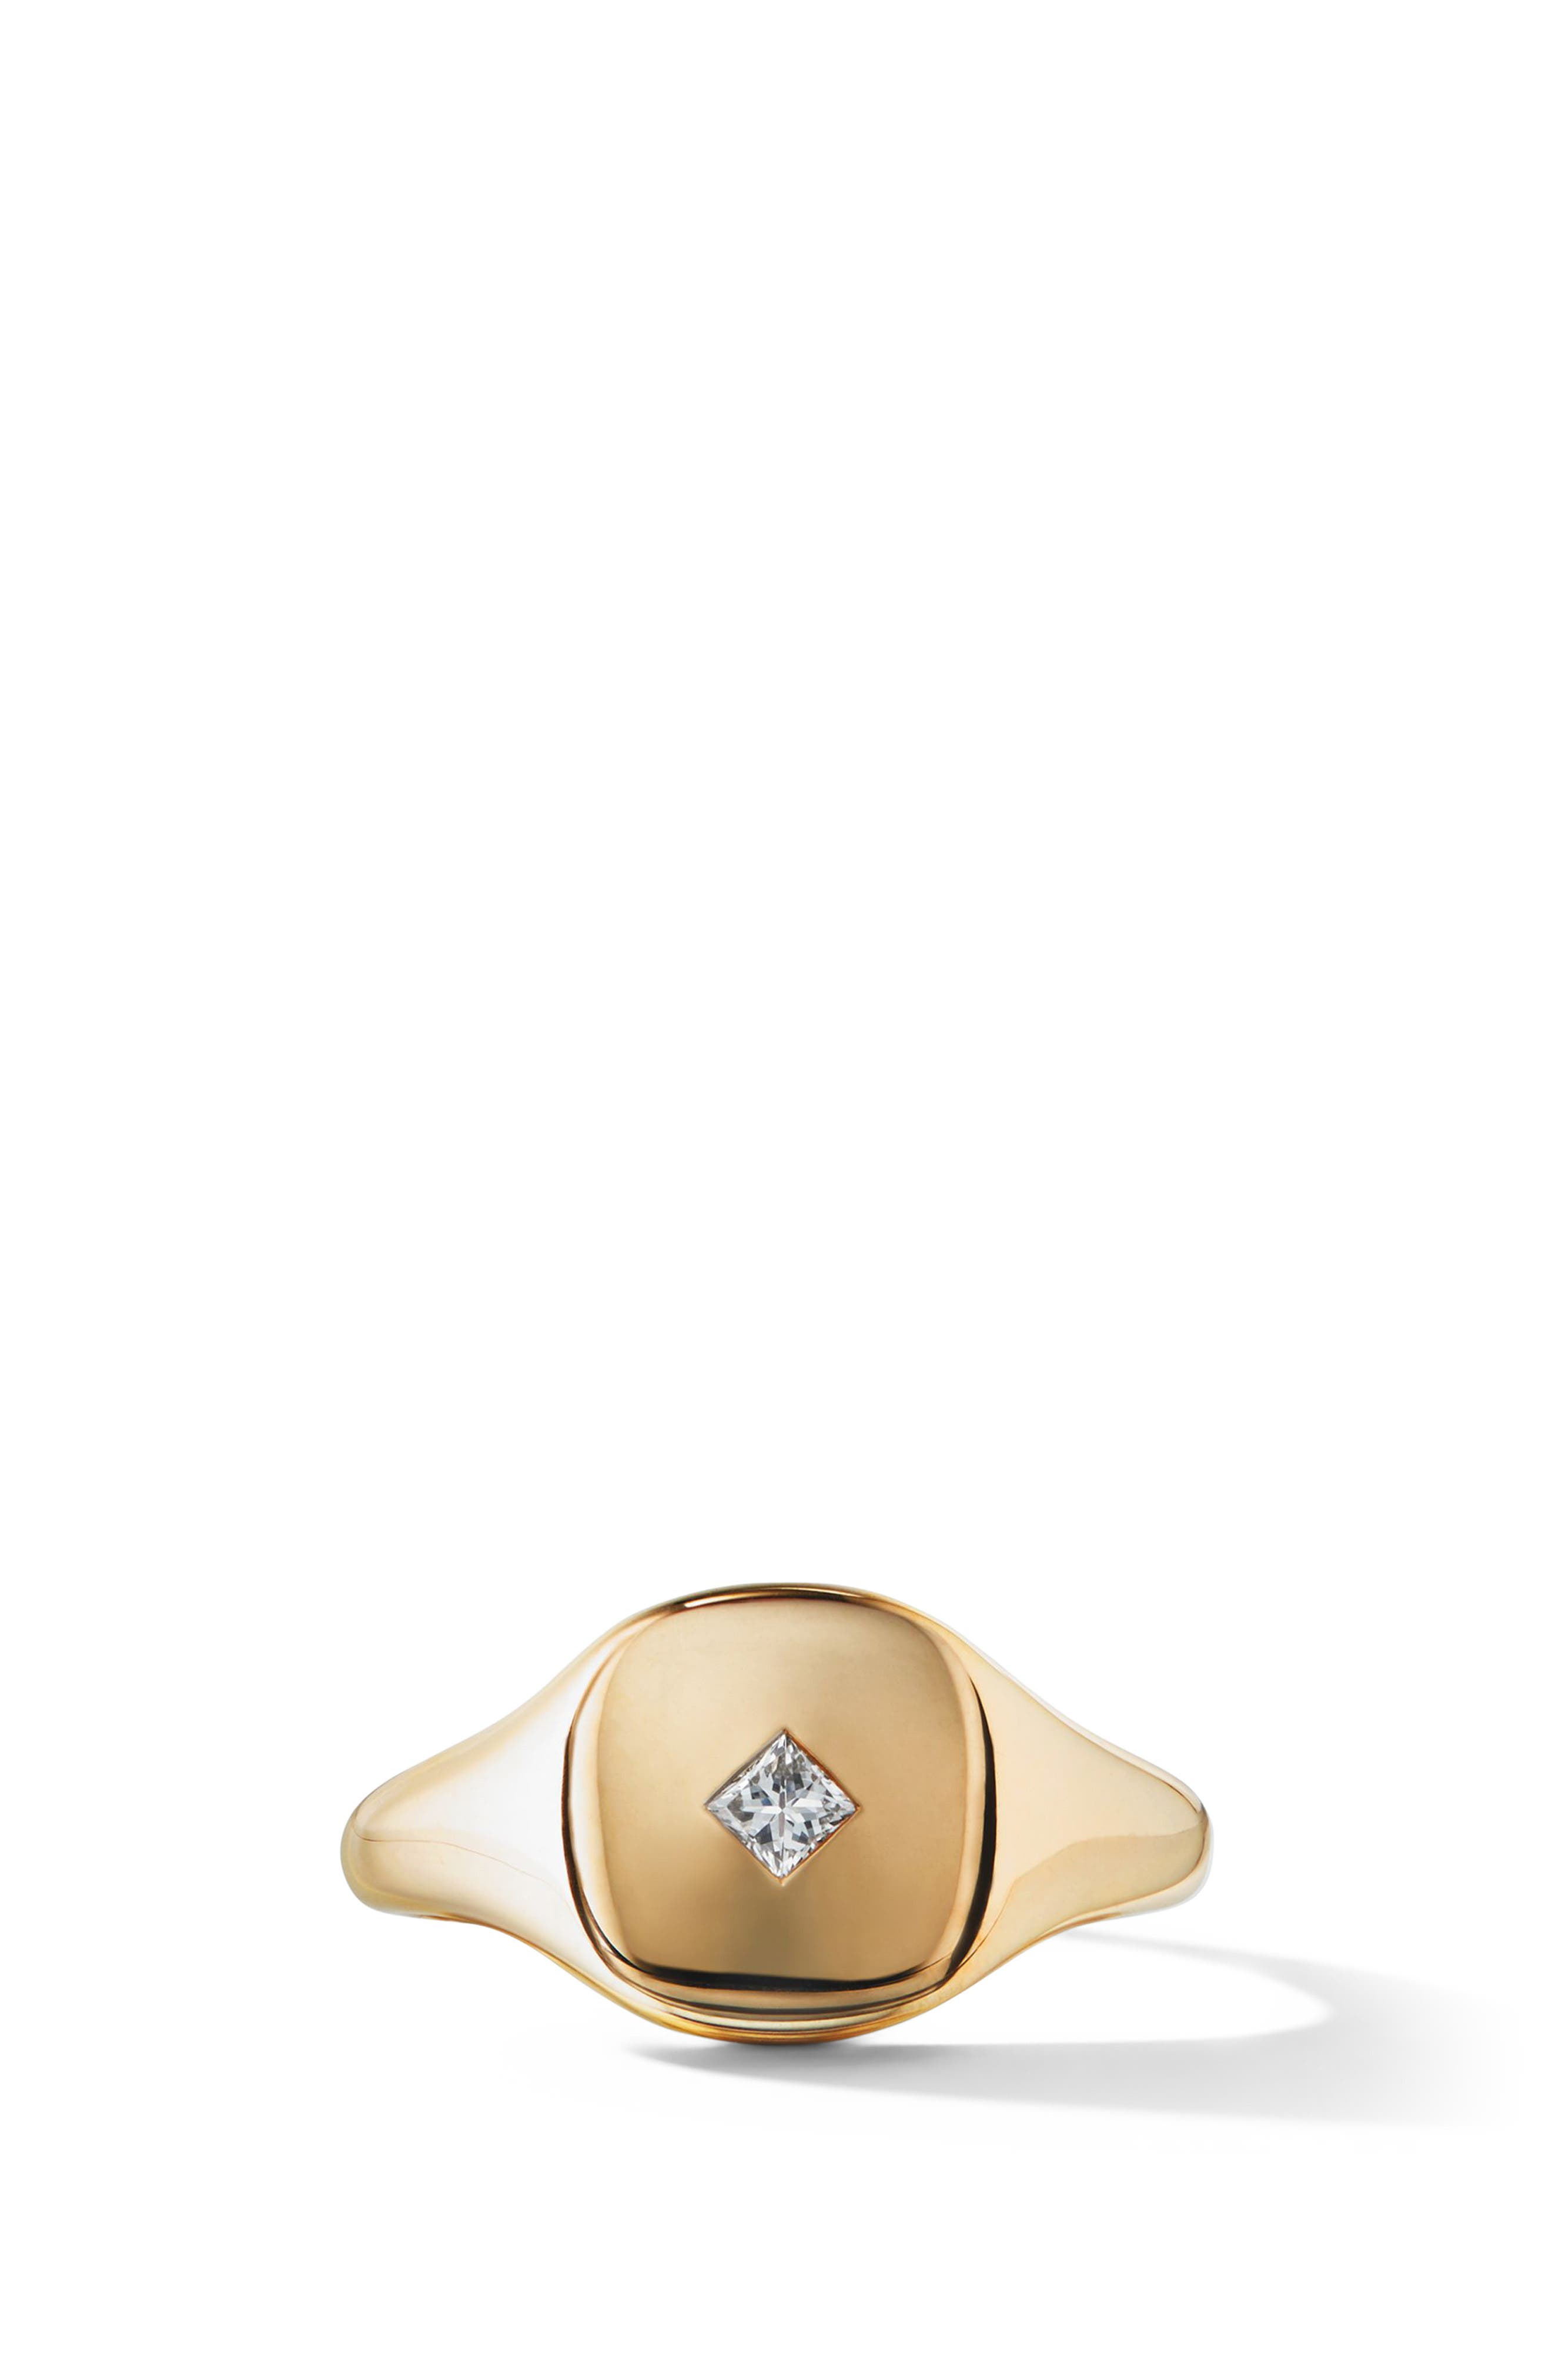 Cable Collectibles Mini Pinky Ring in 18K Gold with Princess Cut Diamond,                             Main thumbnail 1, color,                             GOLD/ DIAMOND